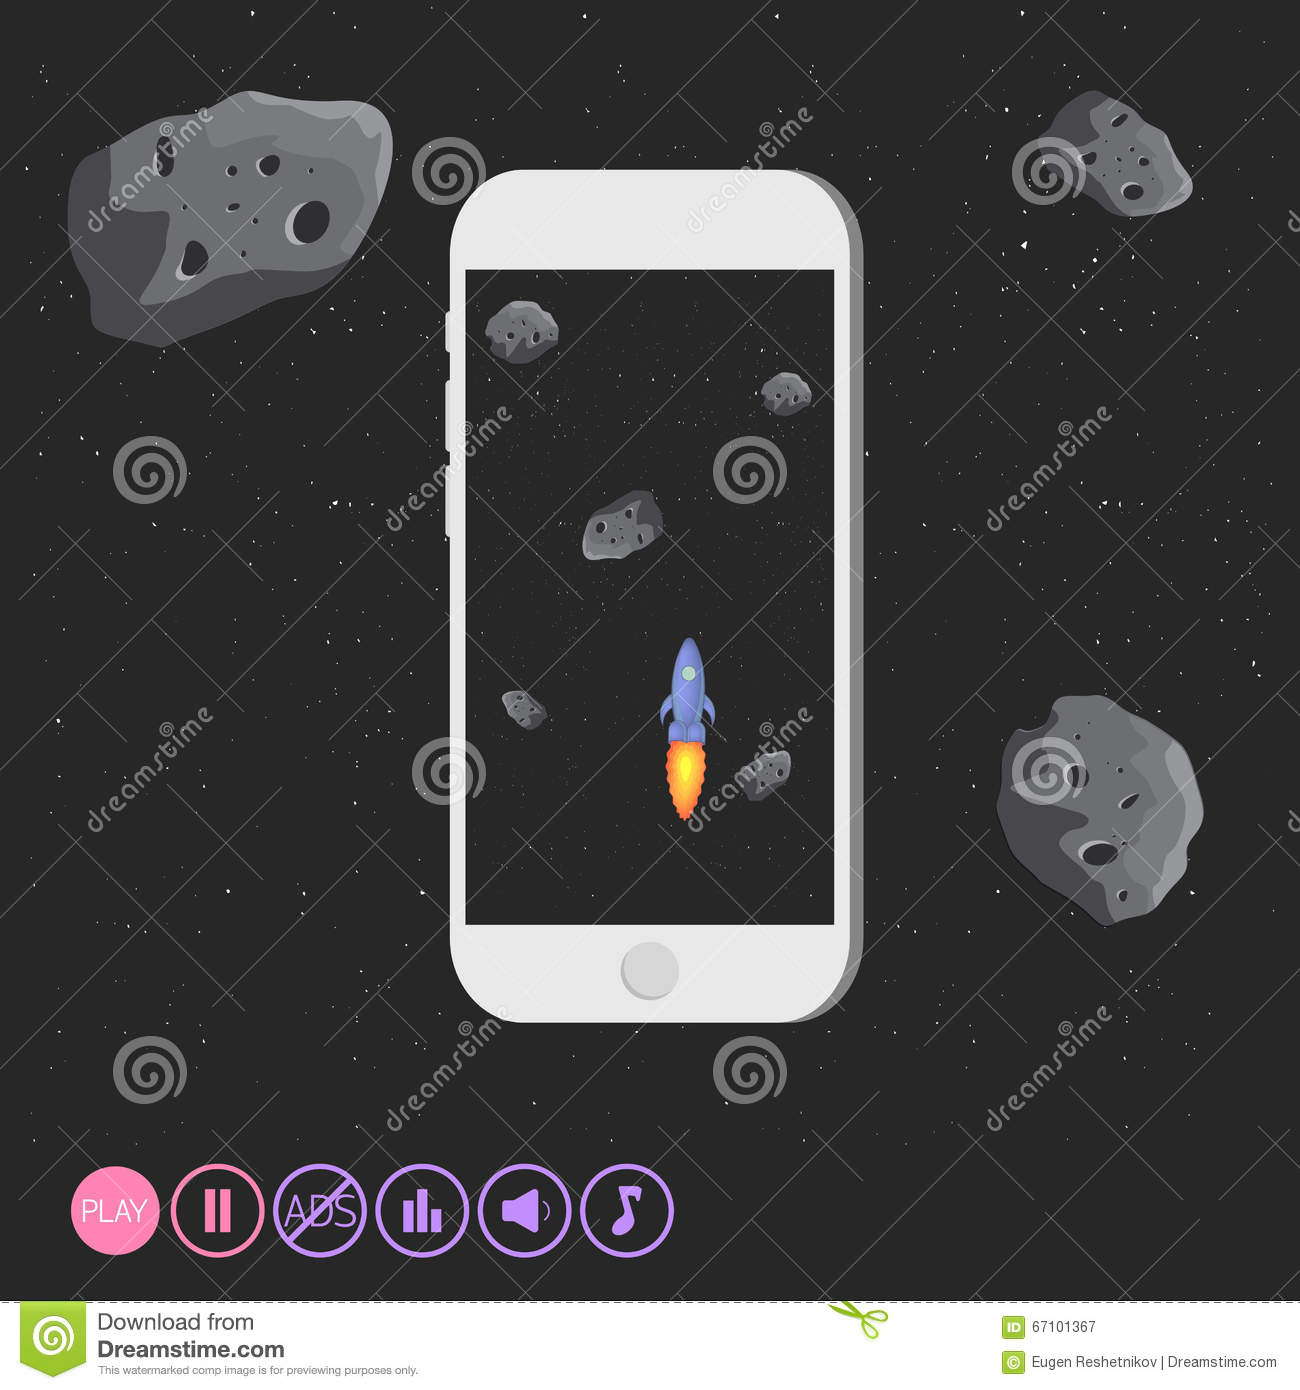 Game Design App Space Asteroids Stock Vector Image